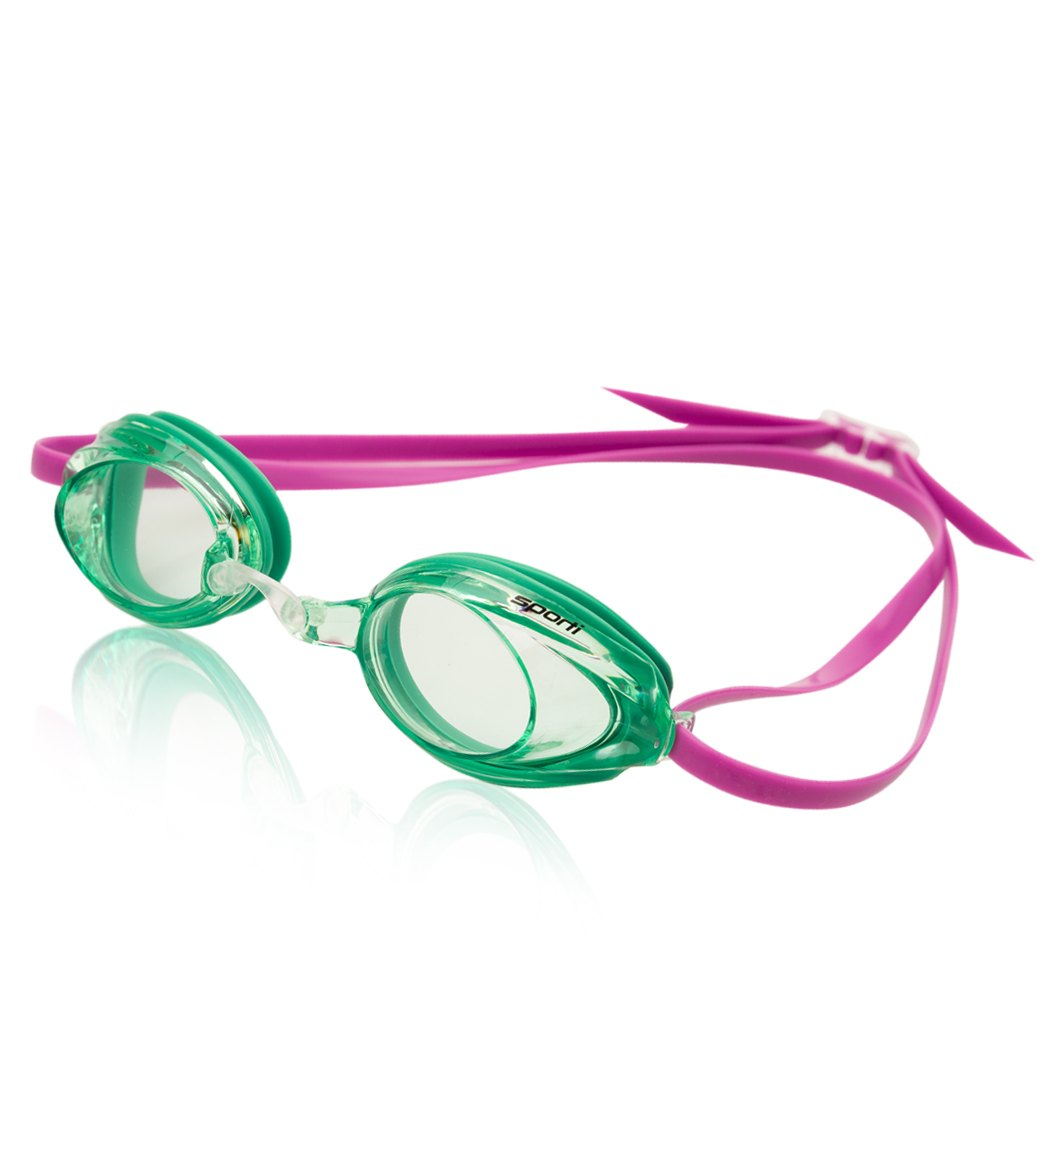 PINK Water Gear Inc. Water Gear Metallic Vision Swim Goggles Anti-fog Junior fit for Competition